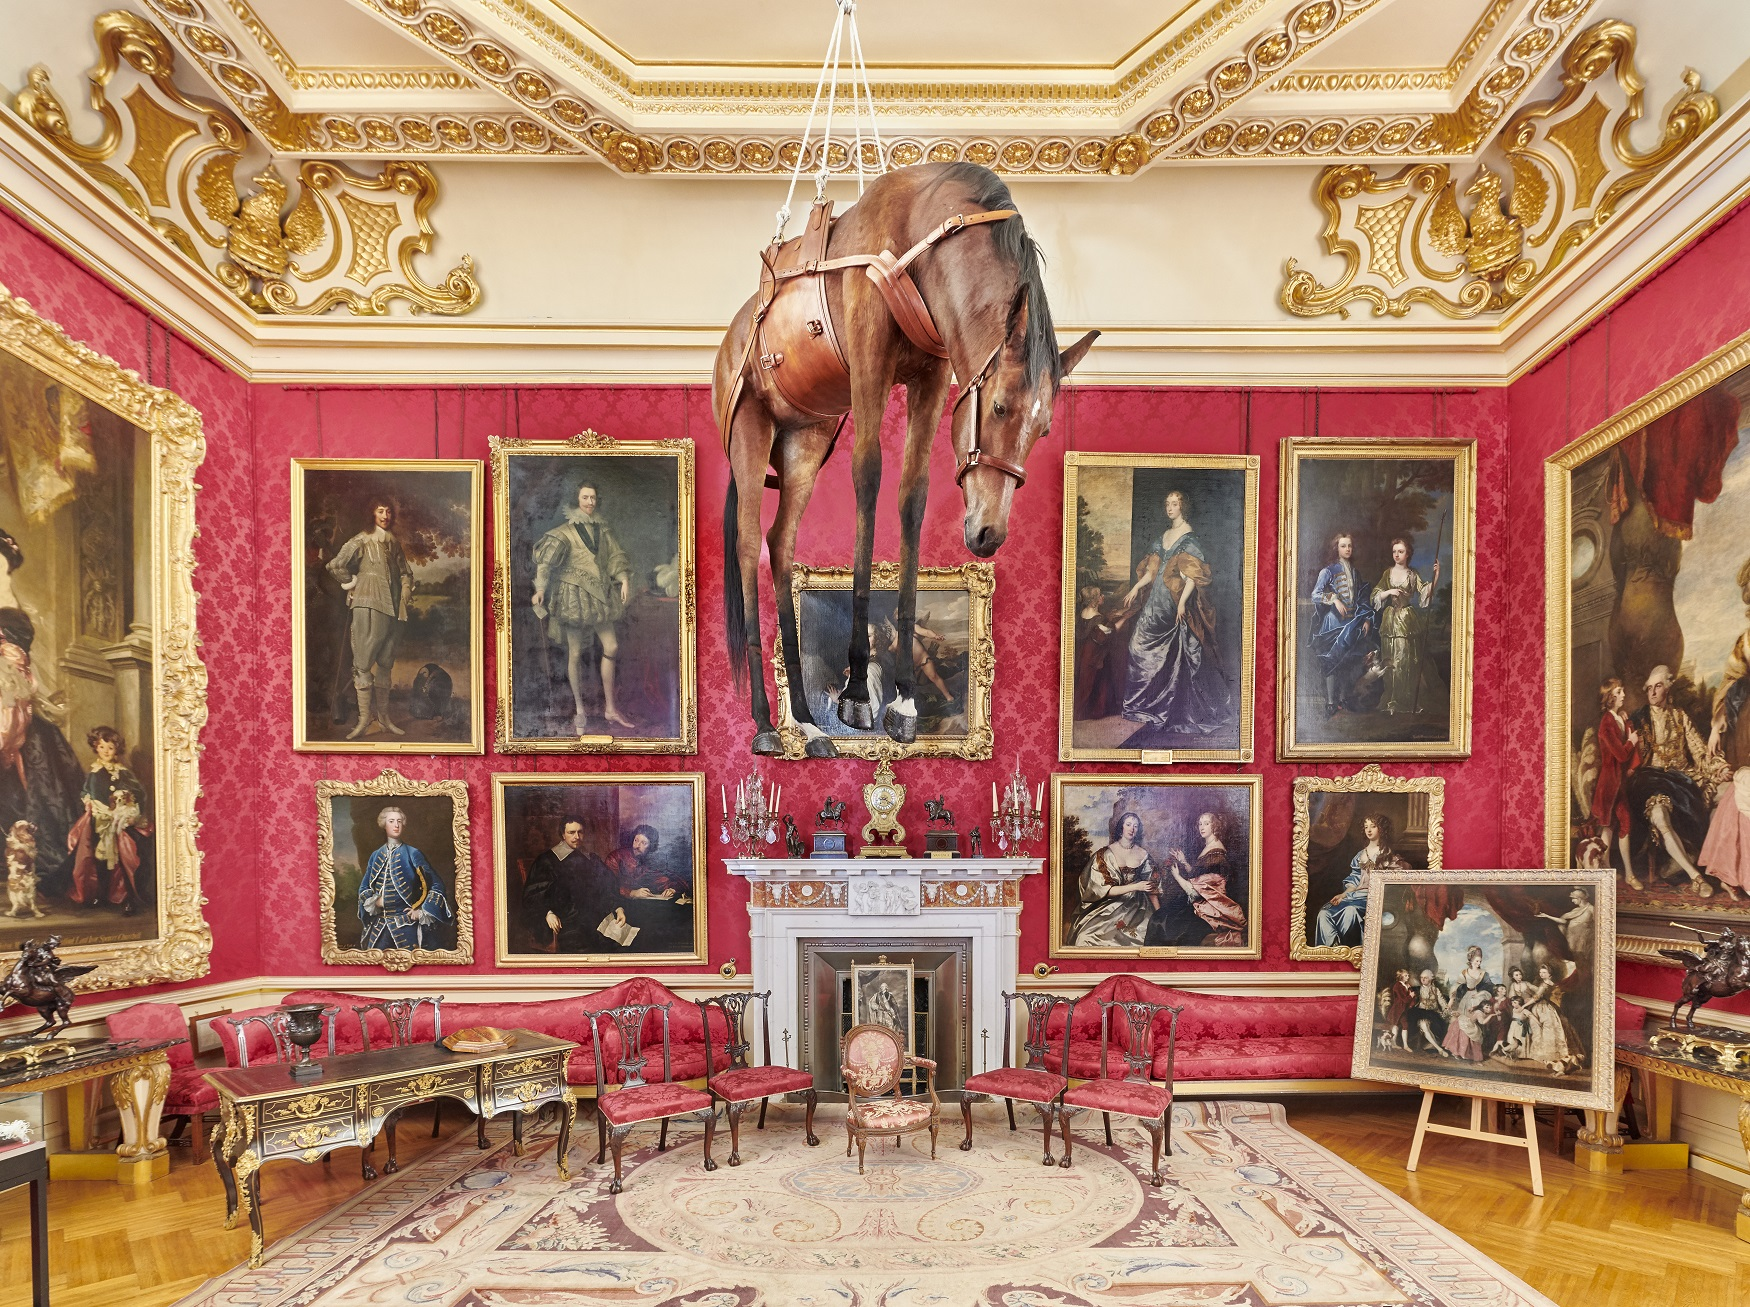 Installation view, Novecento, Victory is Not an Option, Maurizio Cattelan at Blenheim Palace, 2019, photo by Tom Lindboe, courtesy of Blenheim Art Foundation